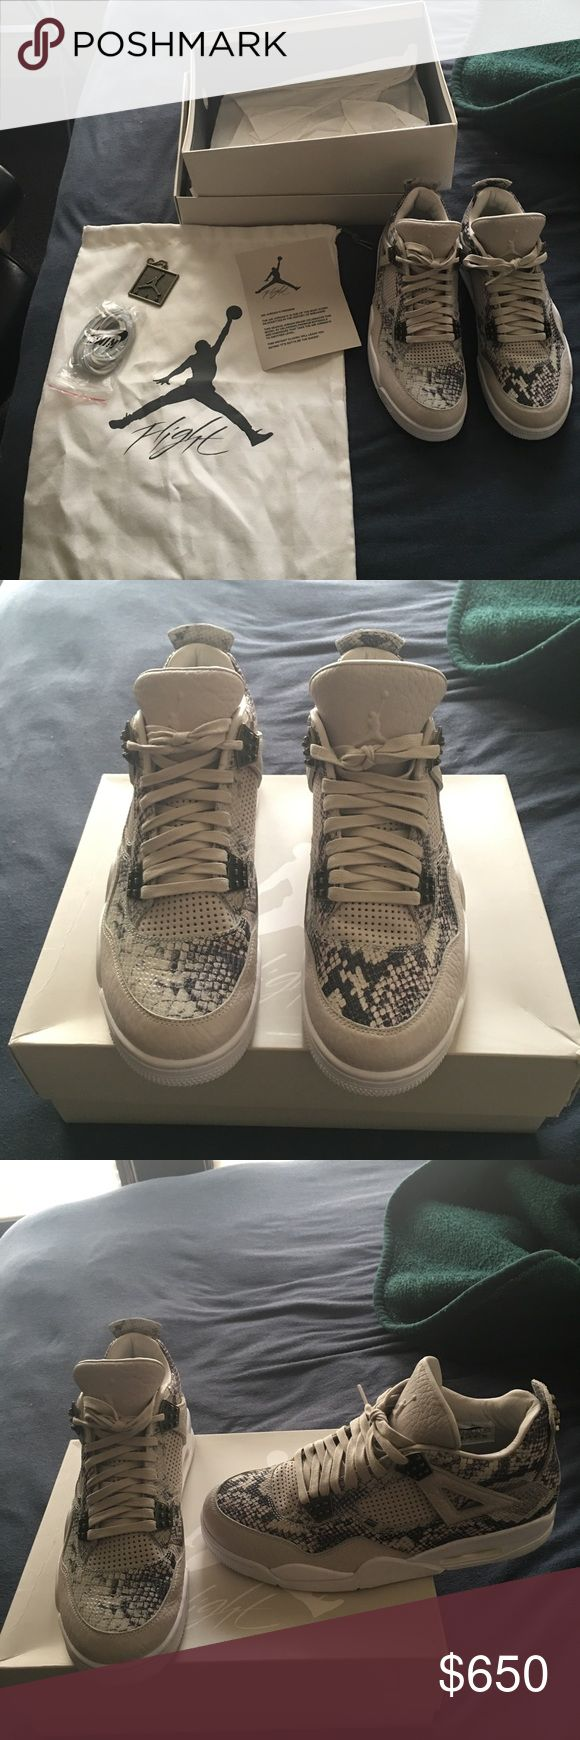 Air Jordan retro 4 snakeskin size 10.5 Worn 1 time other than that perfect condition. Comes with original everything. Size 10.5 Jordan Shoes Sneakers